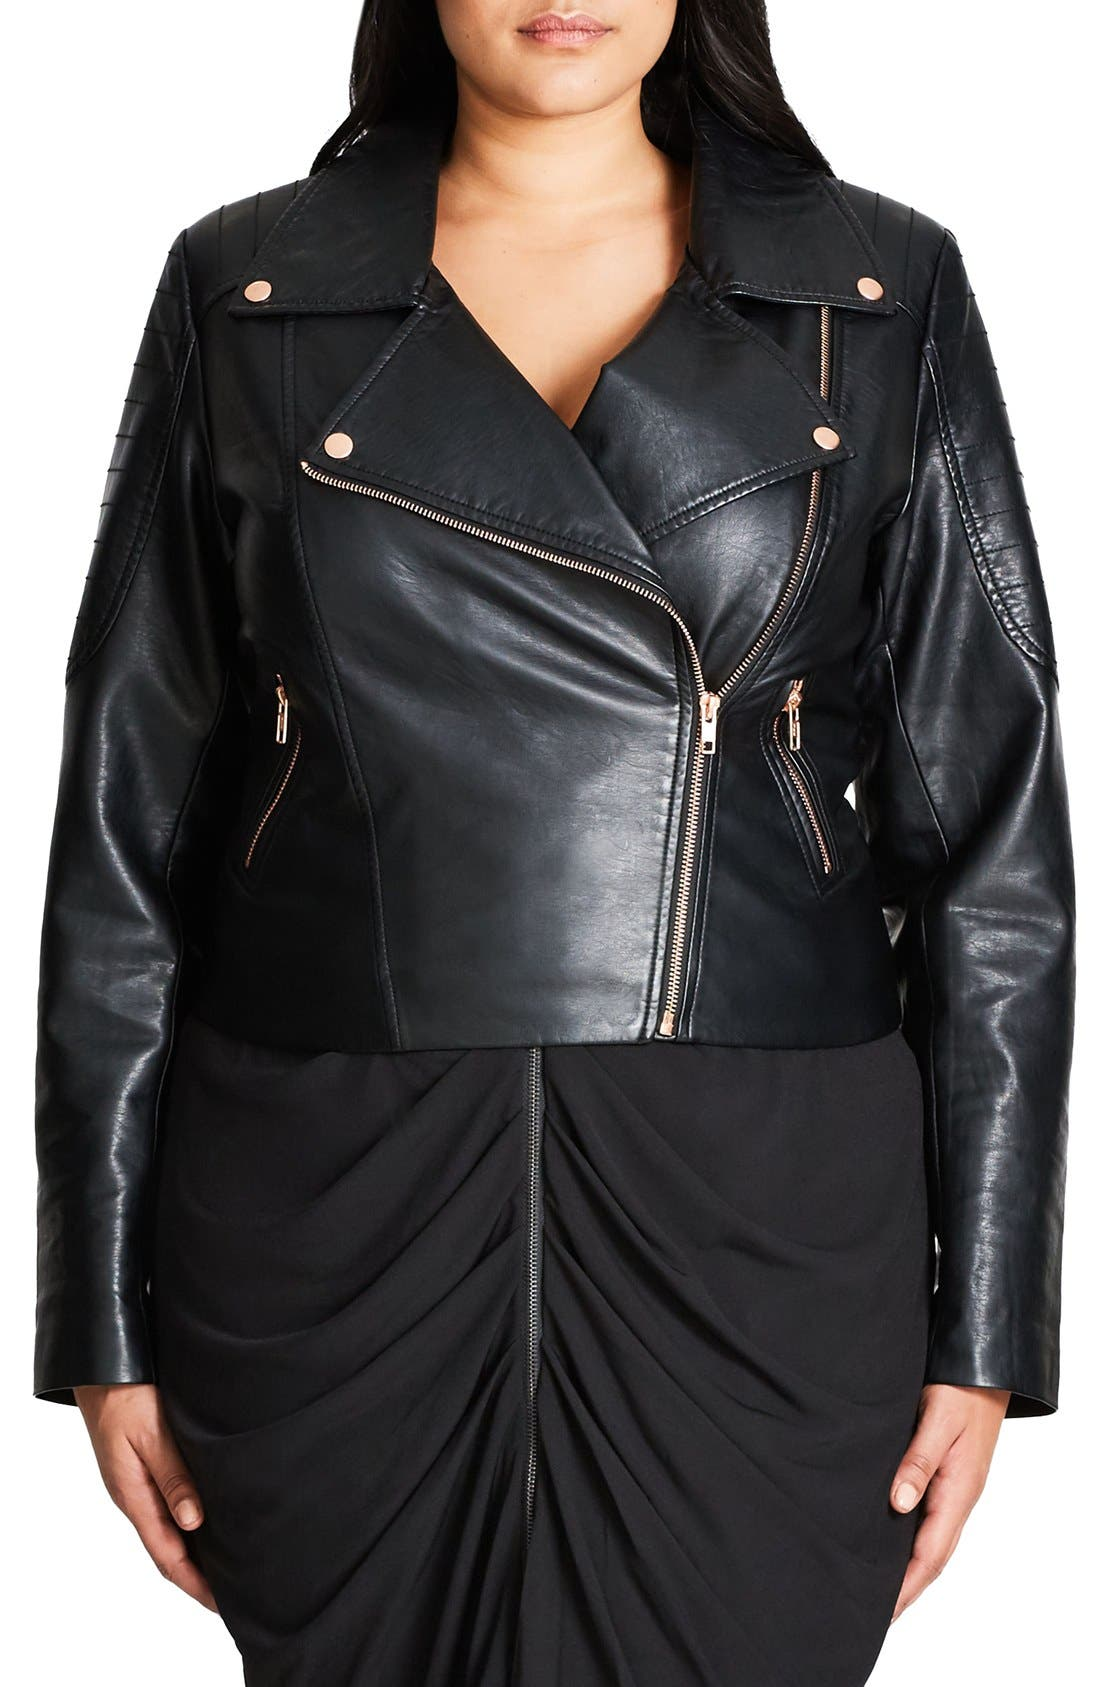 Alternate Image 1 Selected - City Chic Faux Leather Biker Jacket (Plus Size)